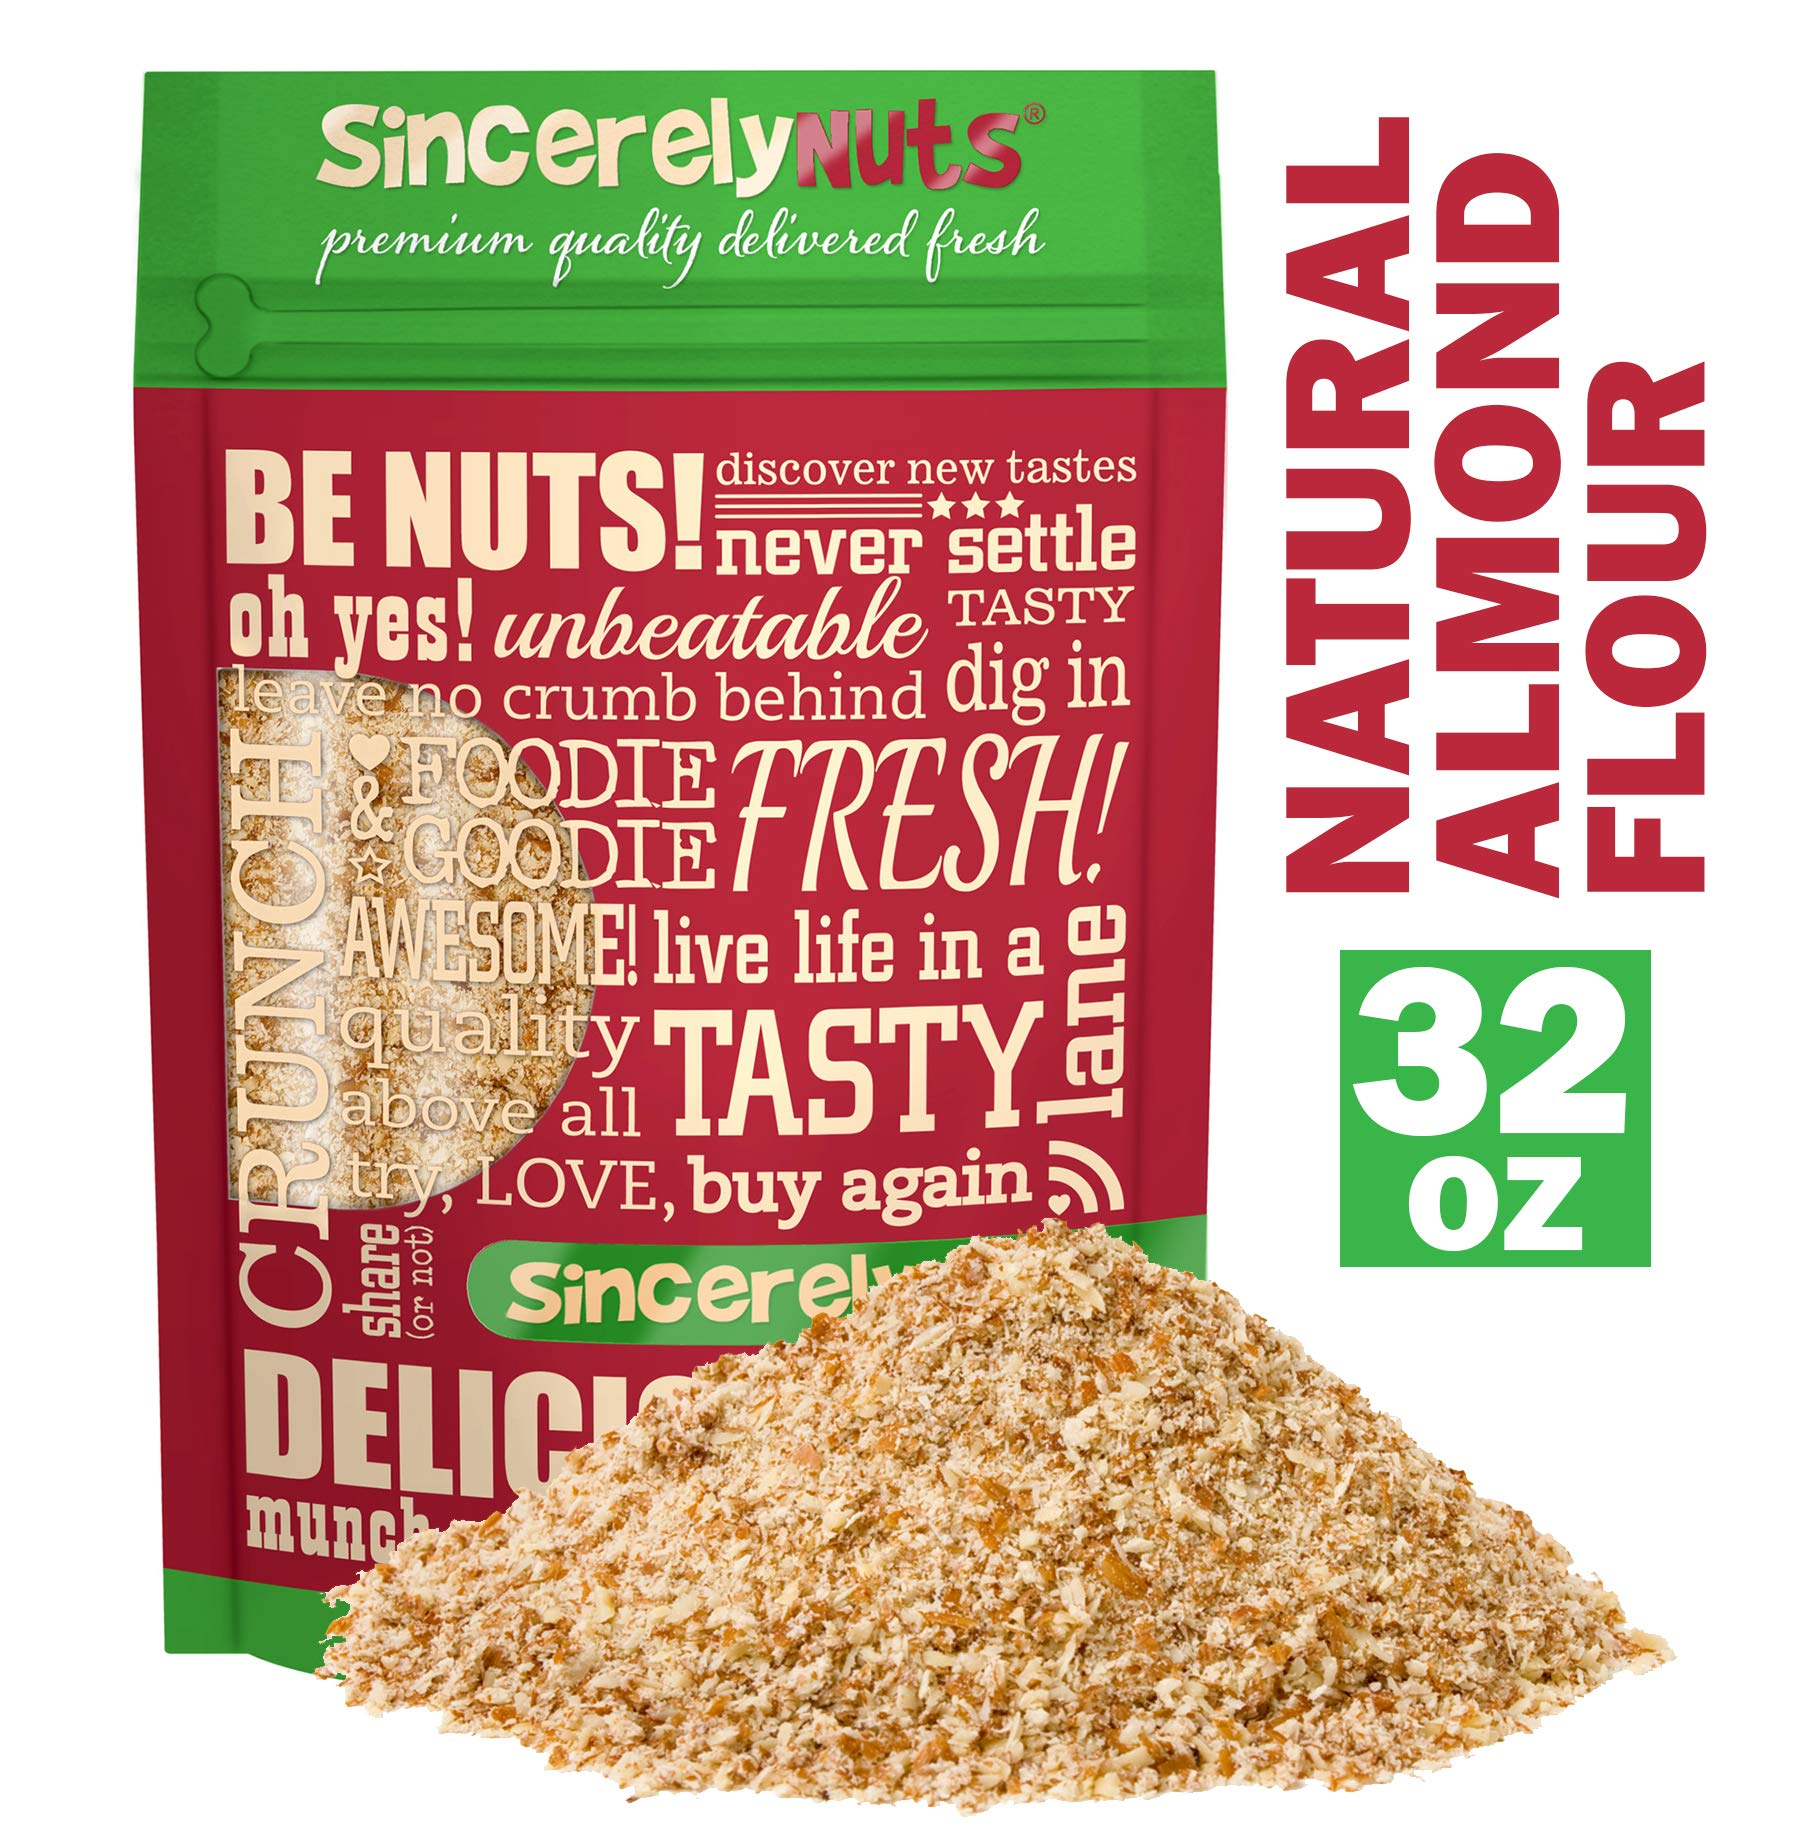 Sincerely Nuts – Natural Almond Flour Meal | 2 Lb. Bag | Fine Grain | Low Calorie, Low Sodium, Vegan, Gluten Free | Gourmet Kosher Snack Food | Source of Fiber, Protein, Vitamins and Minerals